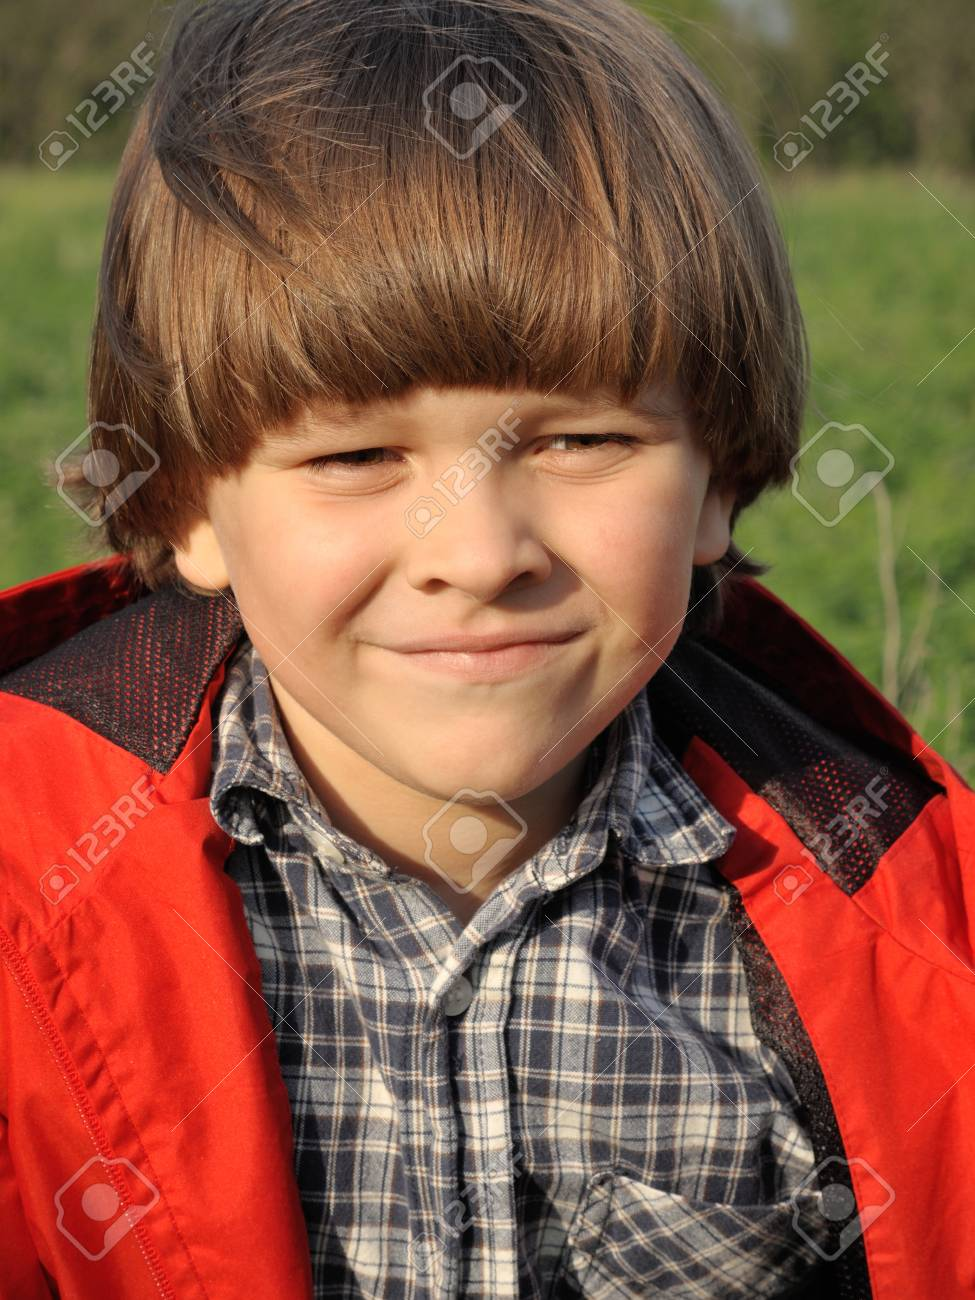 Portrait of a smiling young boy on the nature. Happiness, fashionable concept. Lifestyle. - 43075954